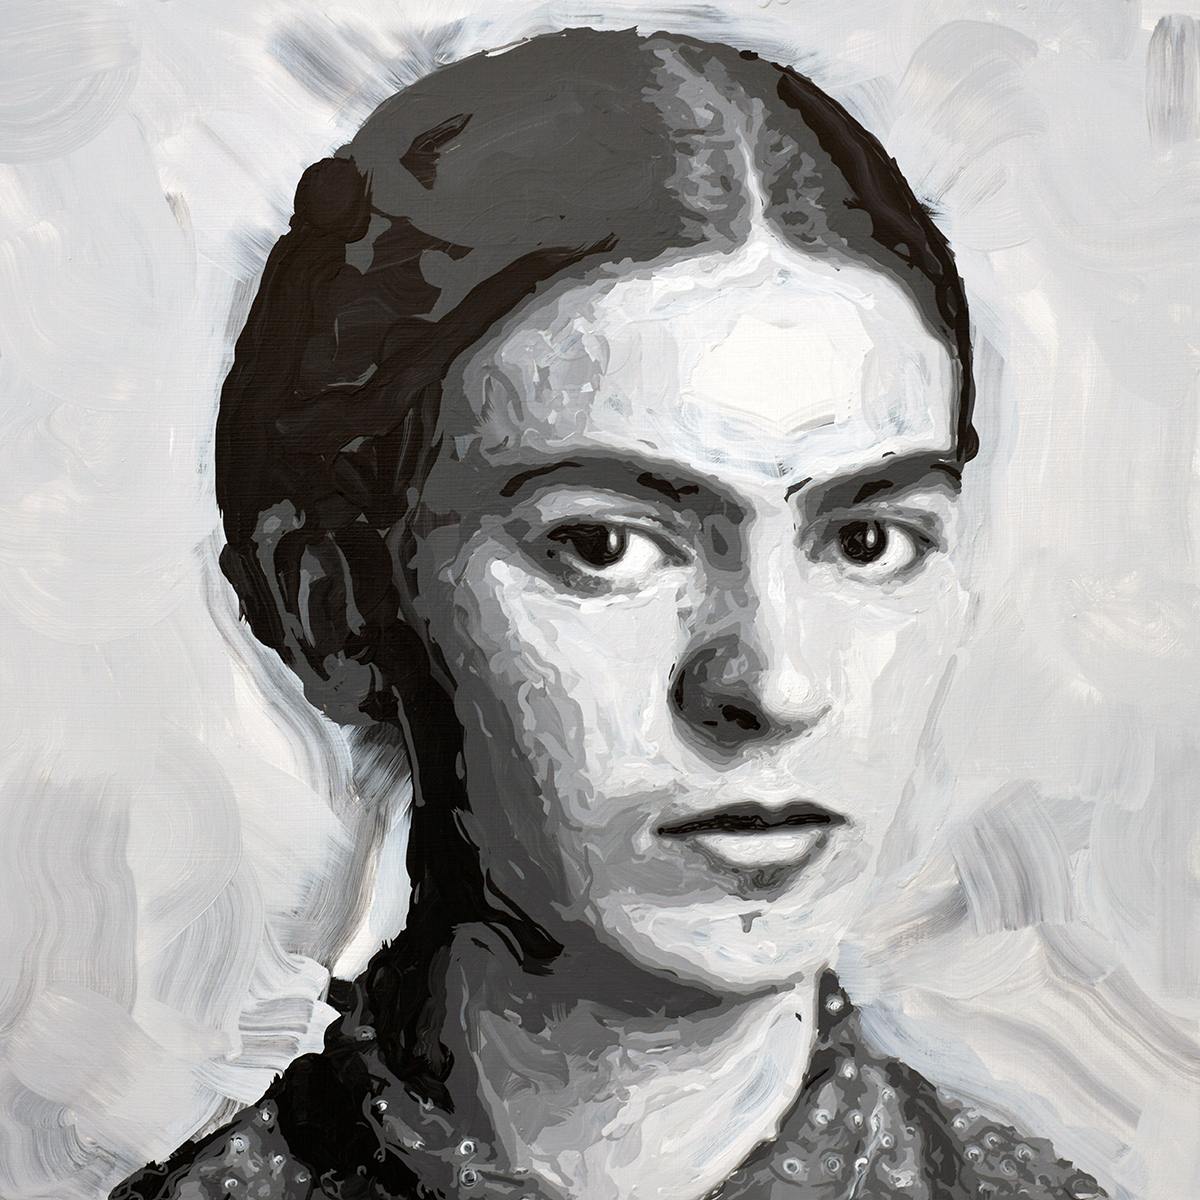 Rob and Nick Carter - RN1256, Frida Kahlo - Robot Painting - Painting time: 19:31:28 - Stroke count: 6,080, 25-26 January 2020 · © Copyright 2021